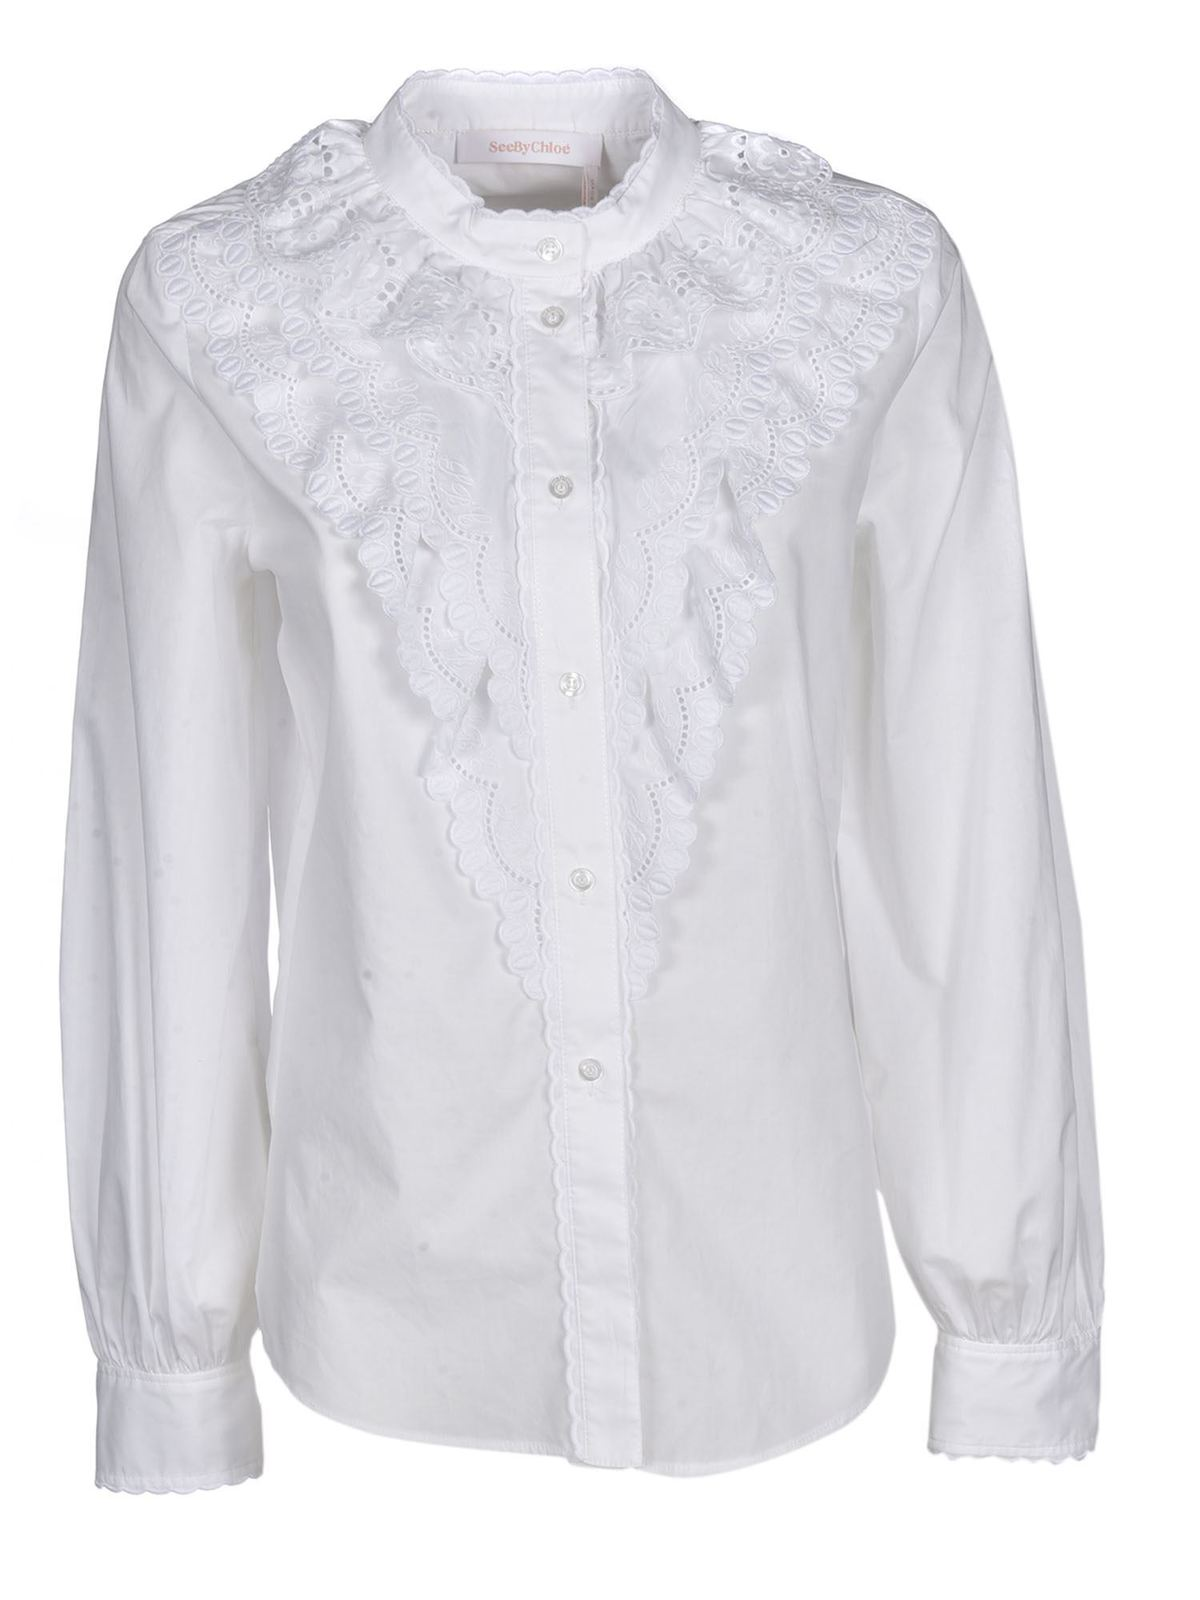 See By Chloé Cottons RUFFLE SHIRT IN WHITE